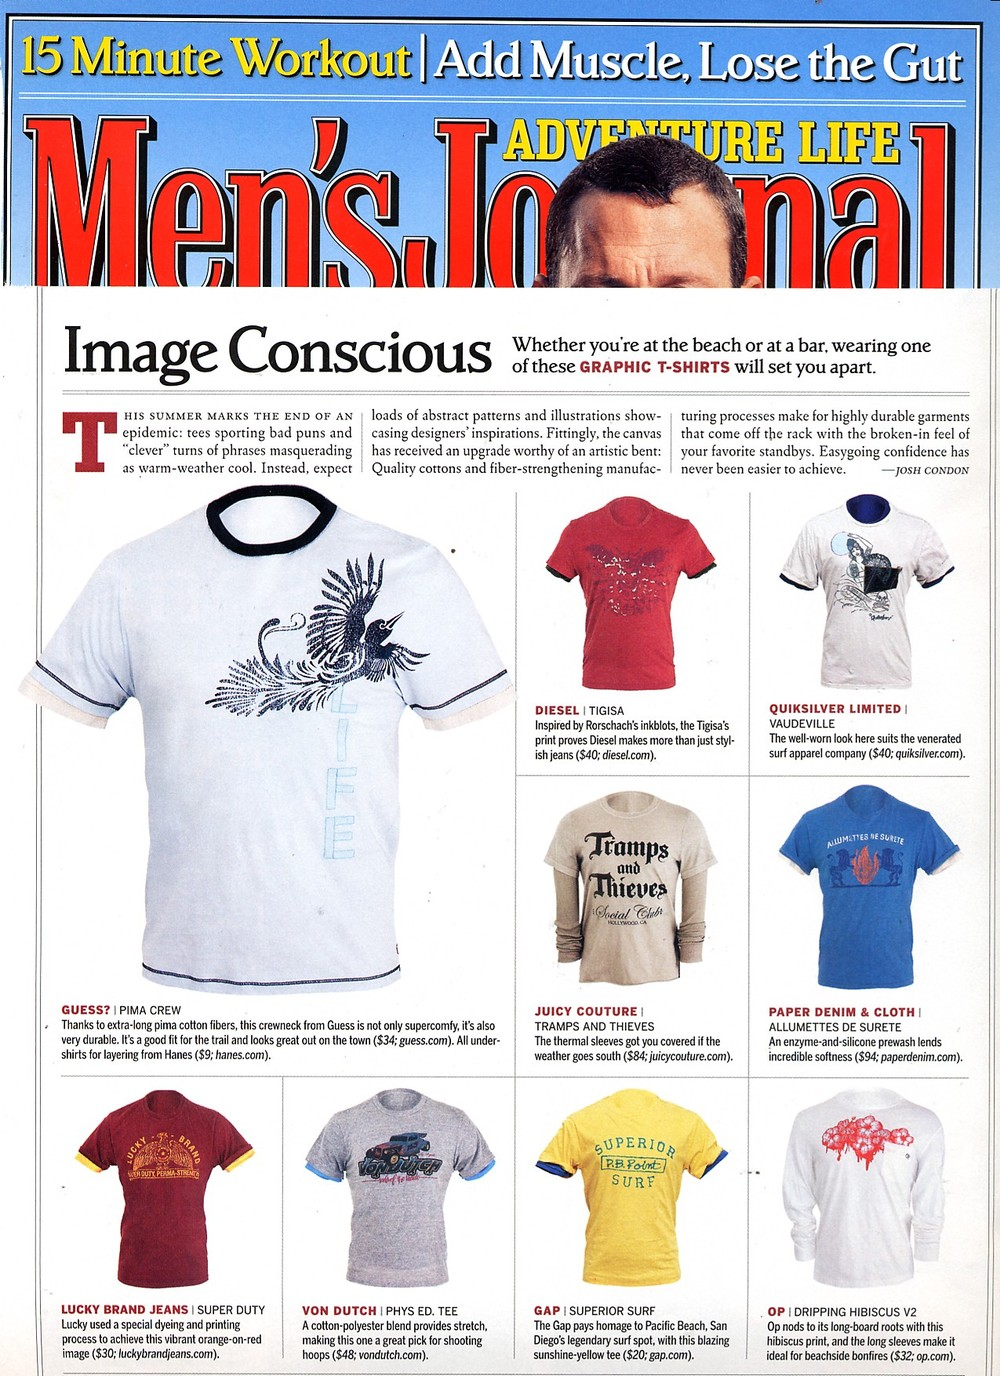 Men's Journal - July 06 - Shirt.jpg